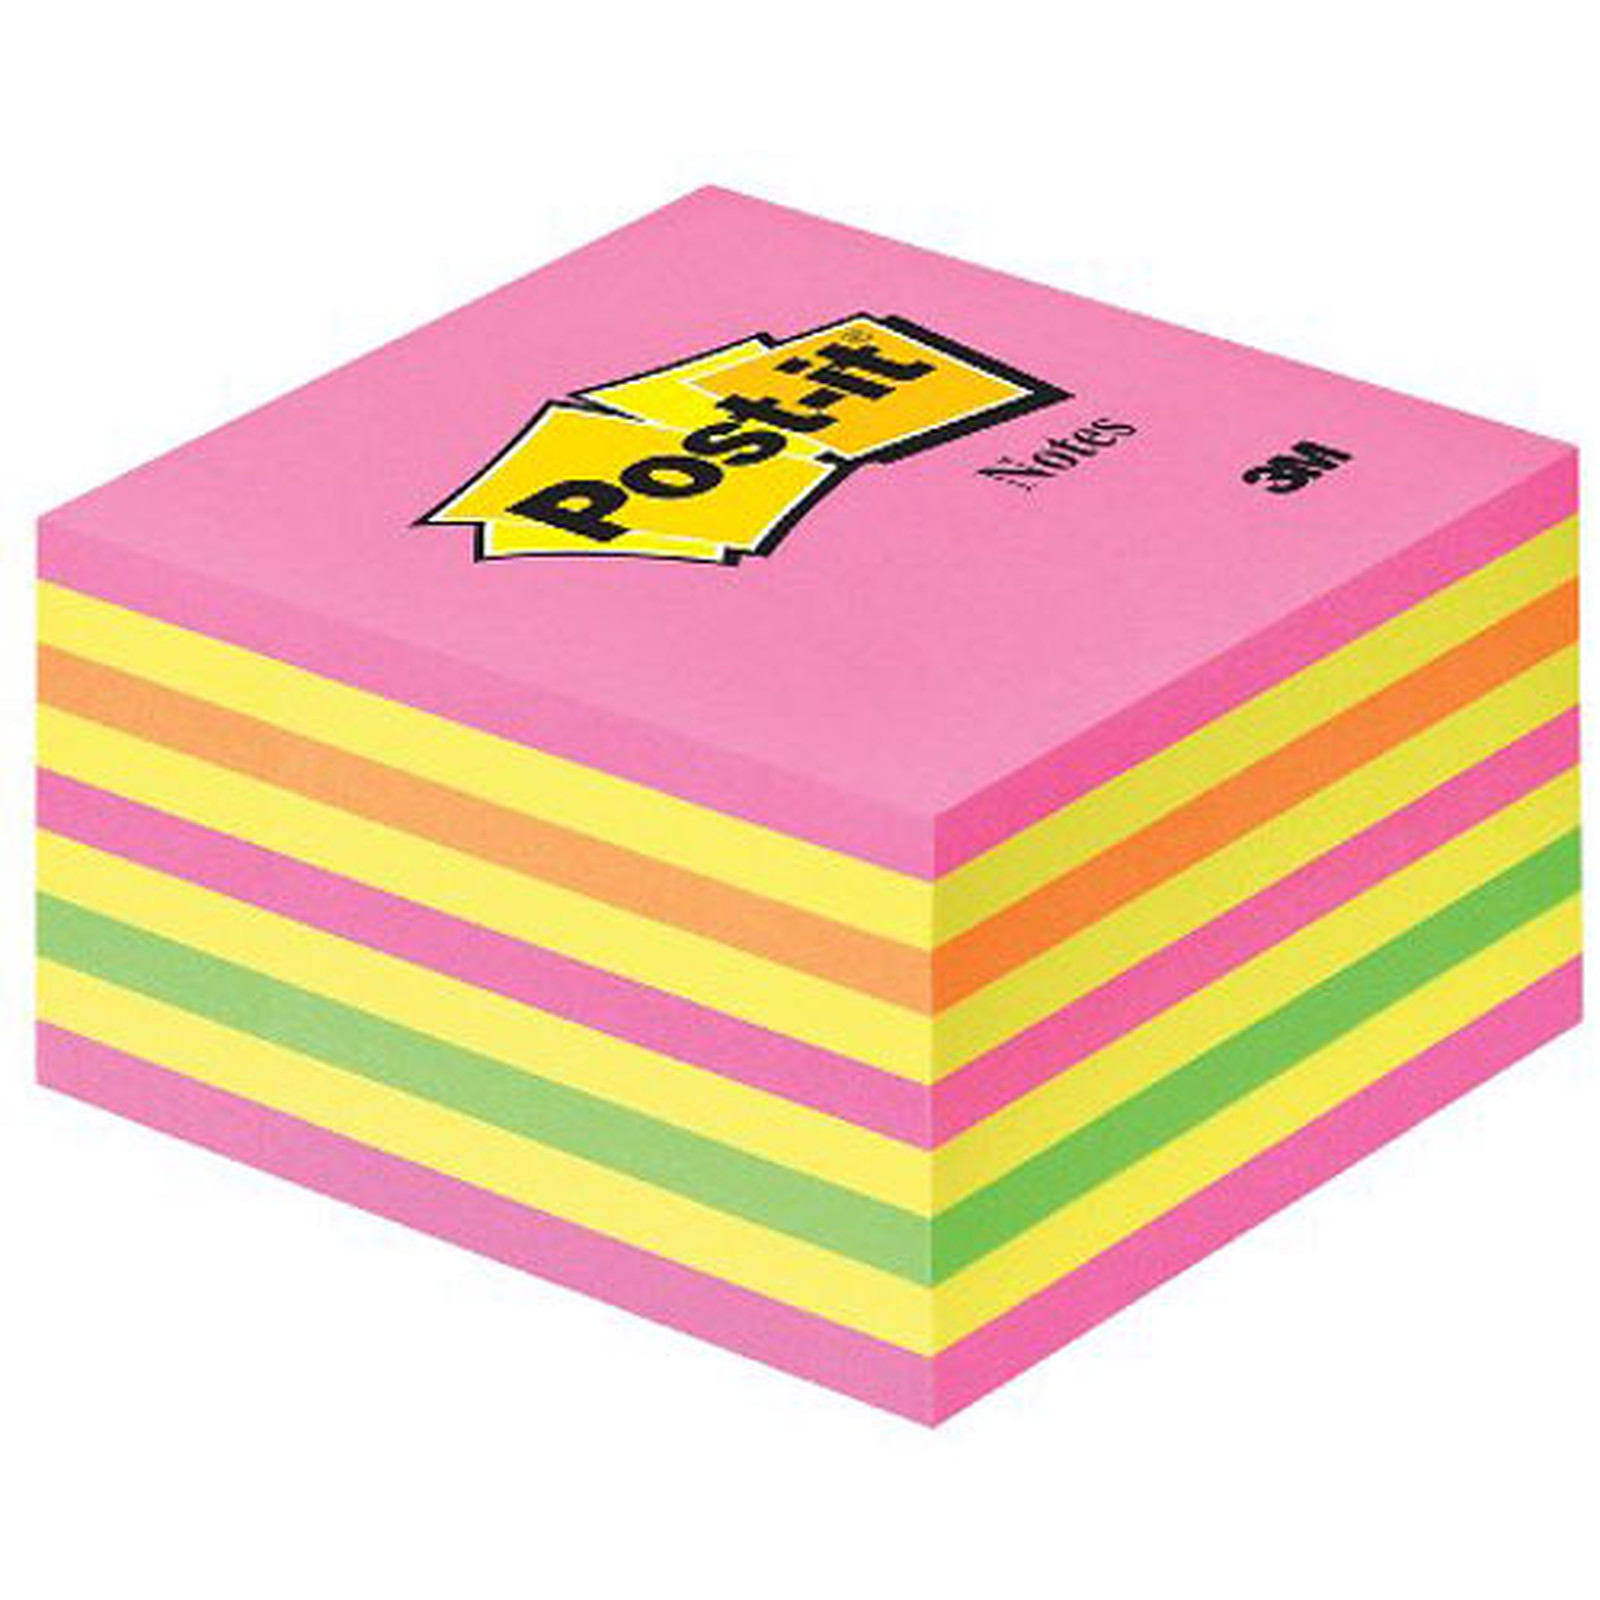 Post-it Bloc cube 450 feuillets 76 x 76 mm Néon Rose